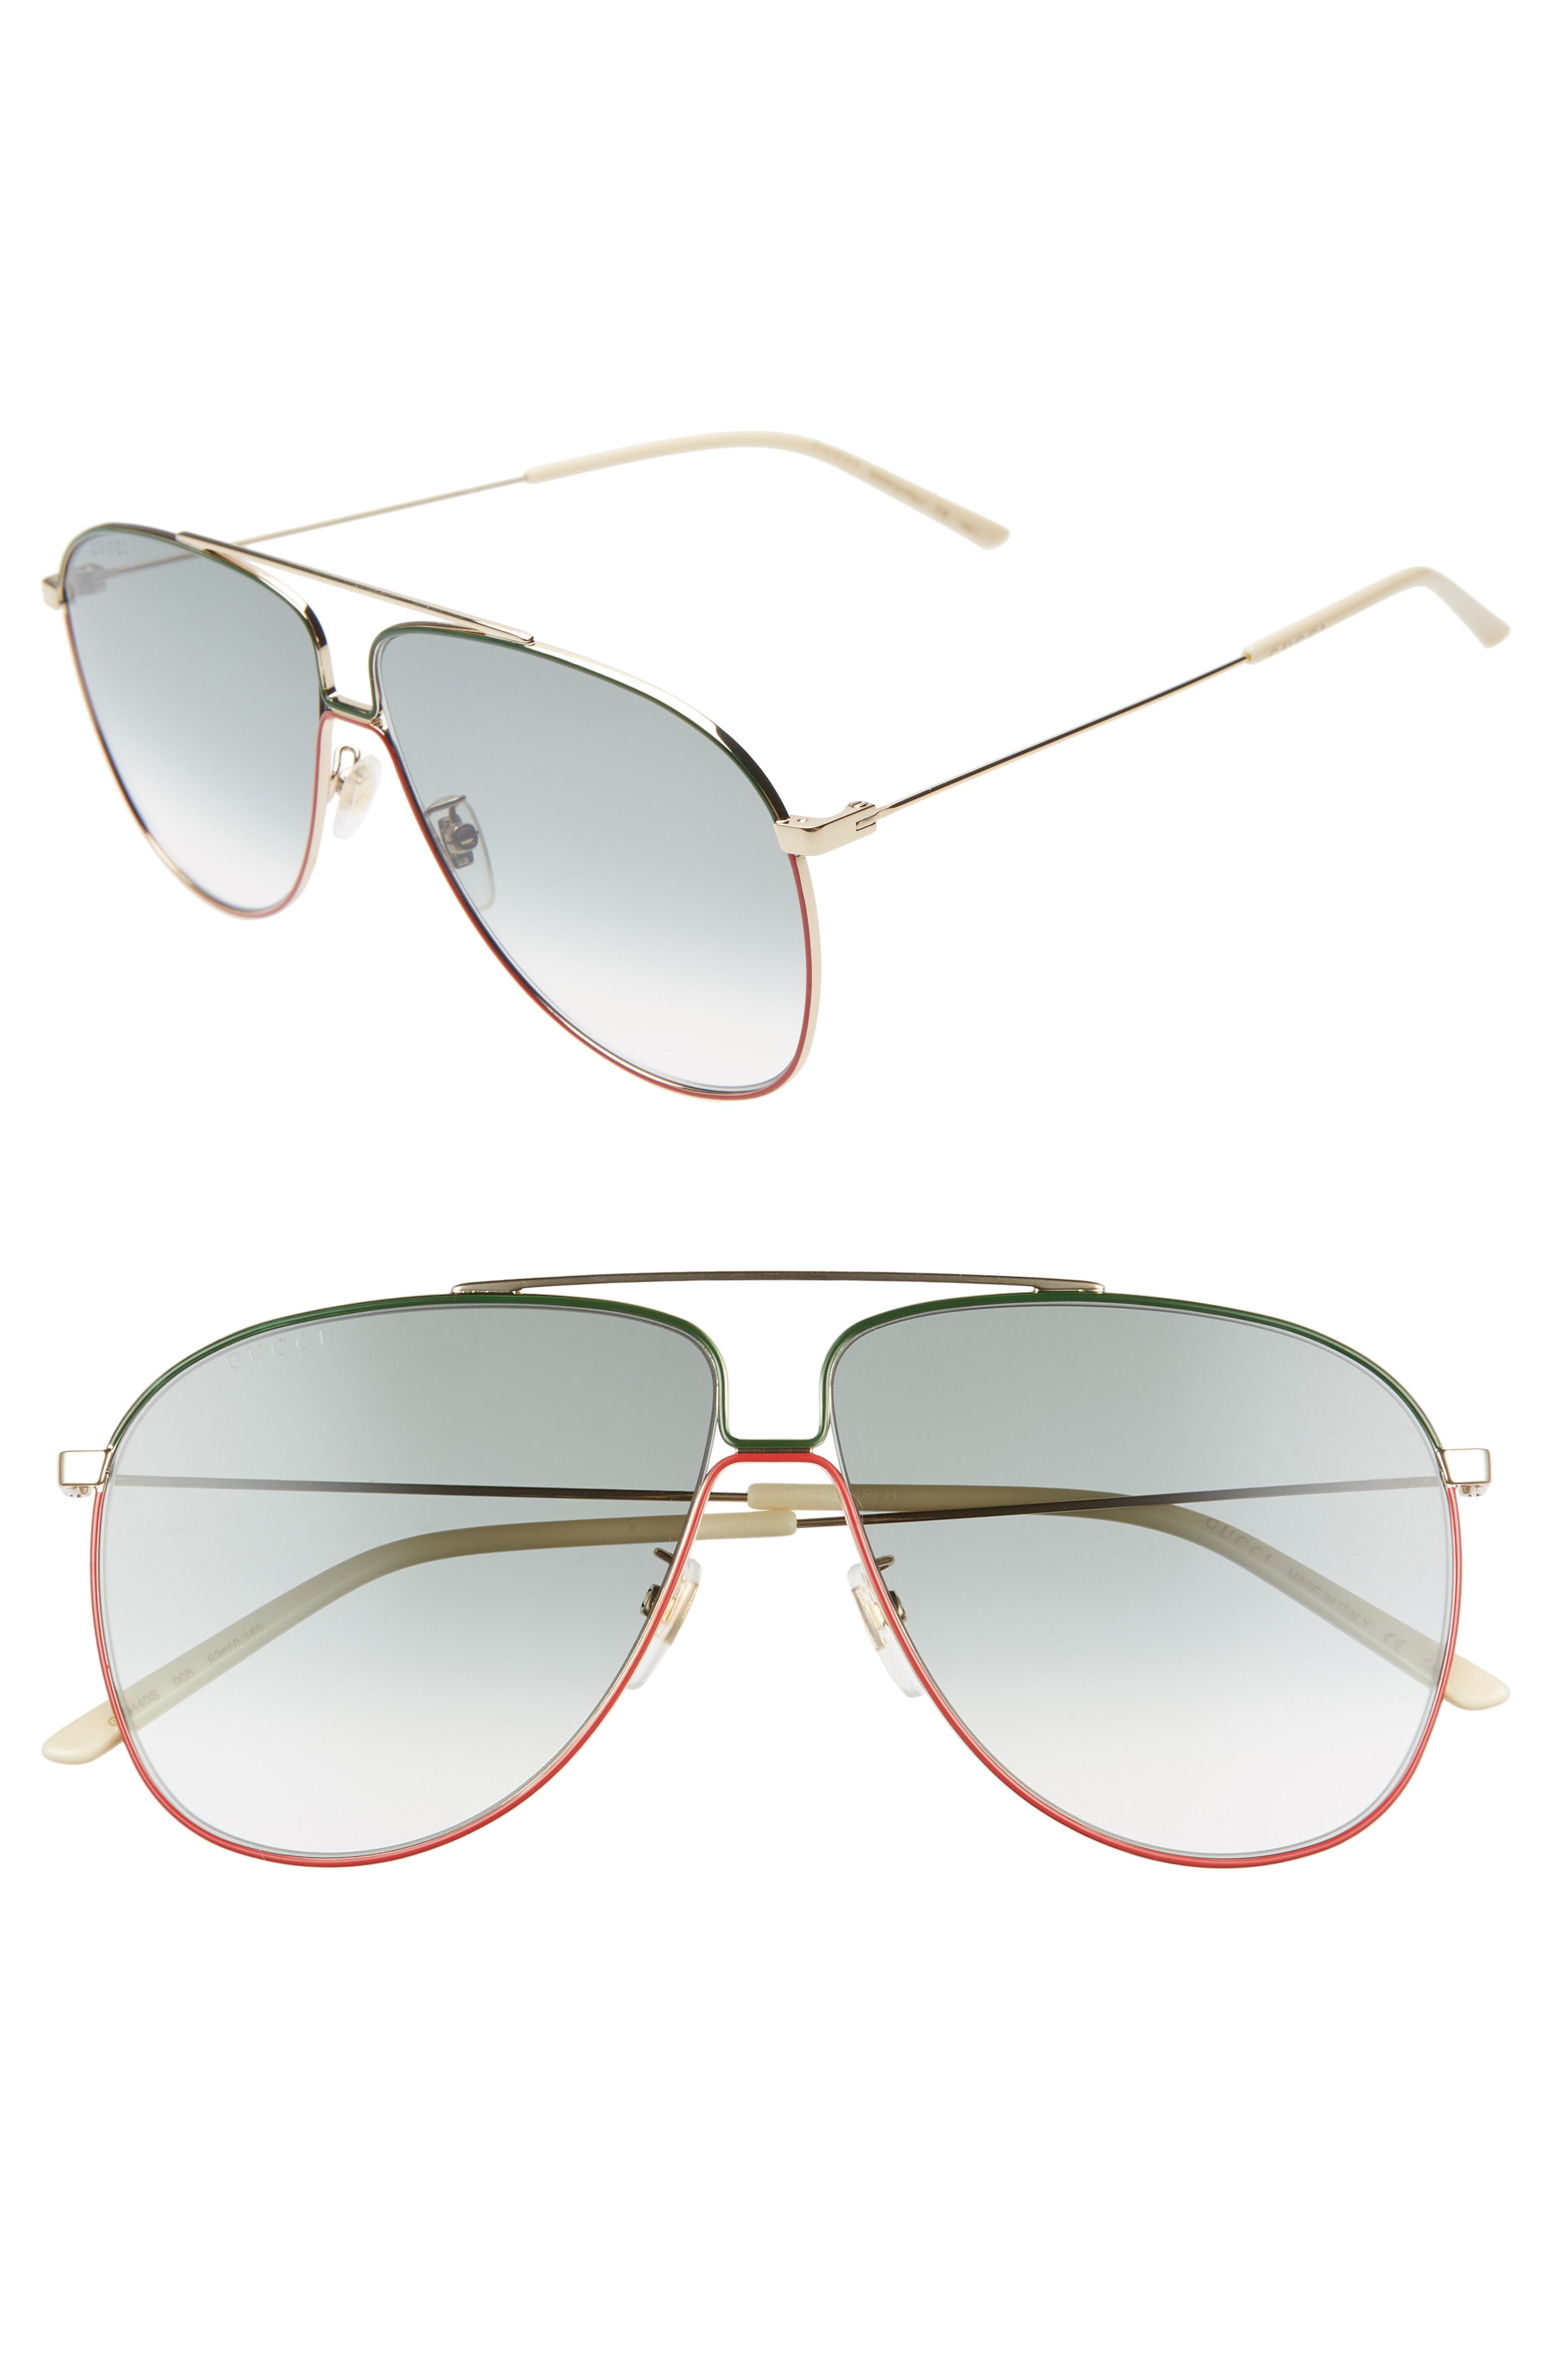 5f95388ba65 Men s Gucci 63Mm Oversize Gradient Aviator Sunglasses – Gold  Green ...